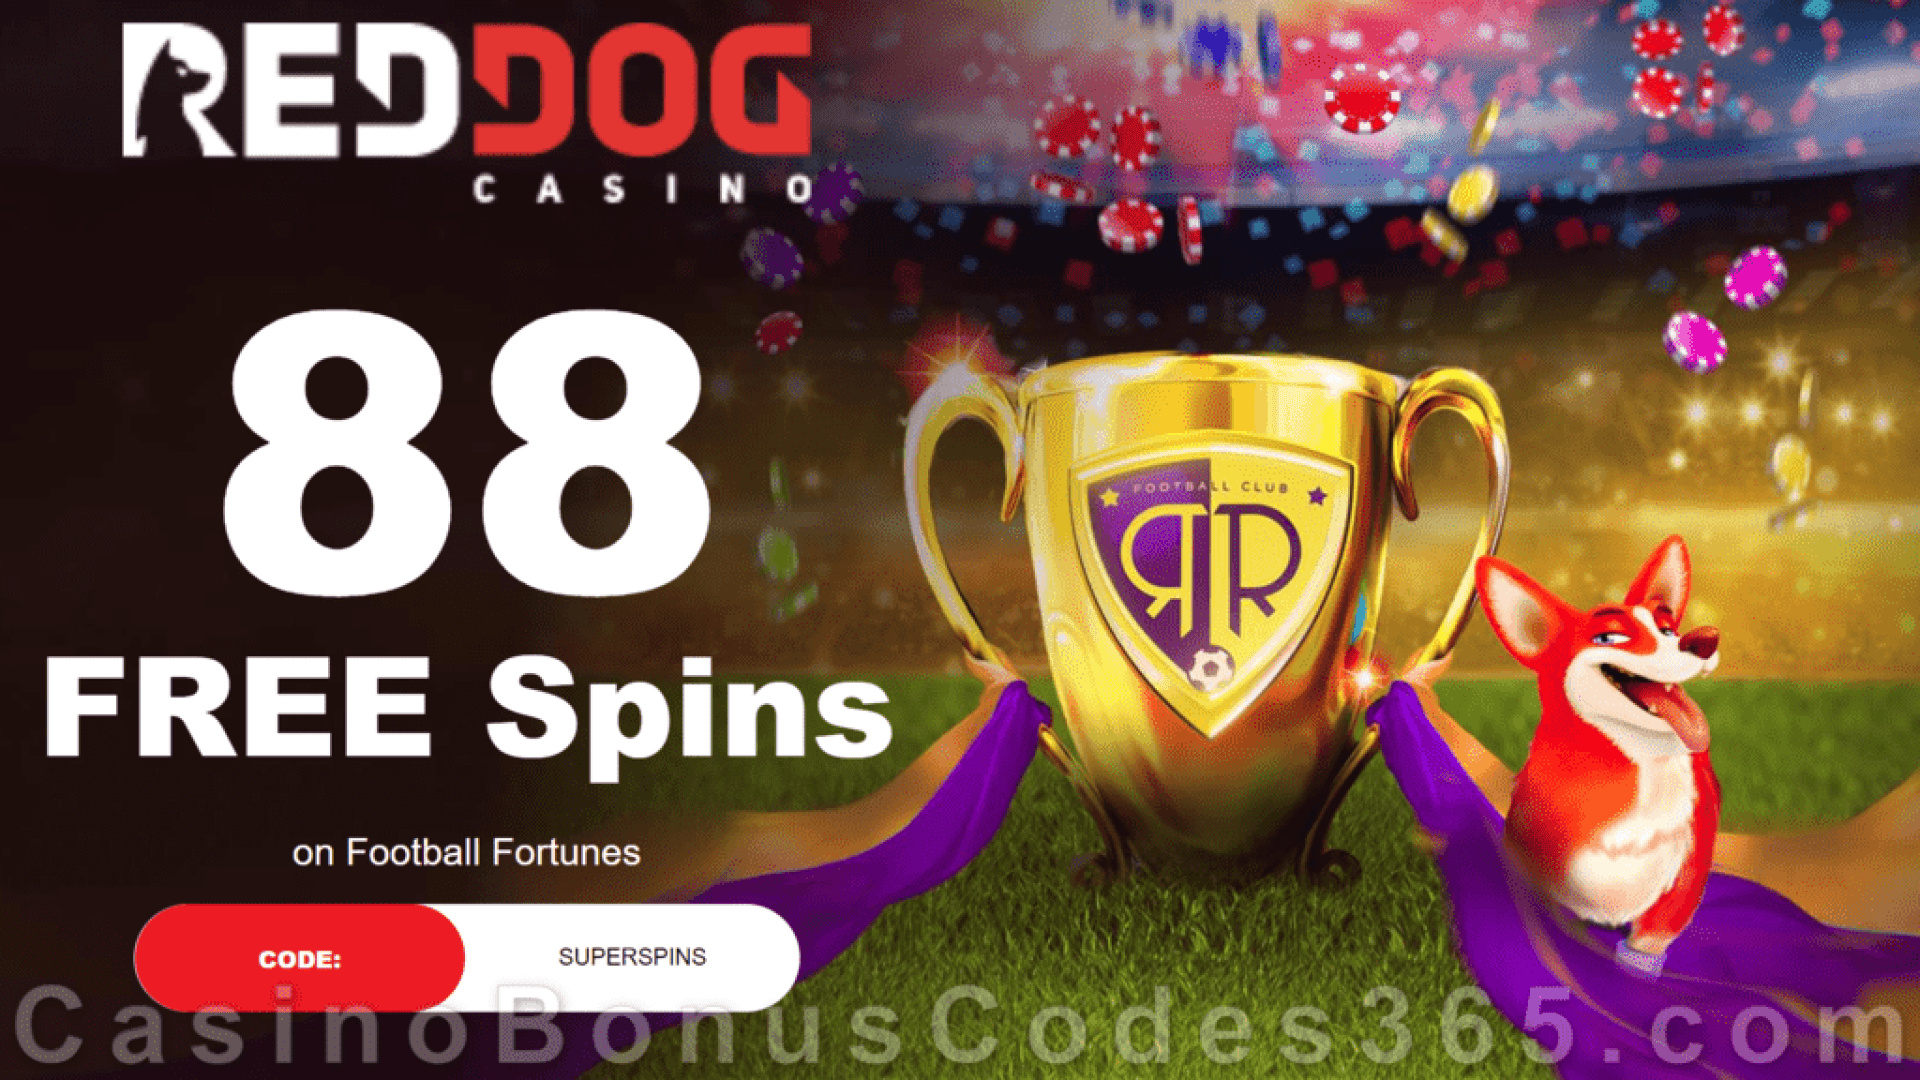 Red Dog Casino 88 FREE Spins on Football Fortunes Special Deposit Offer